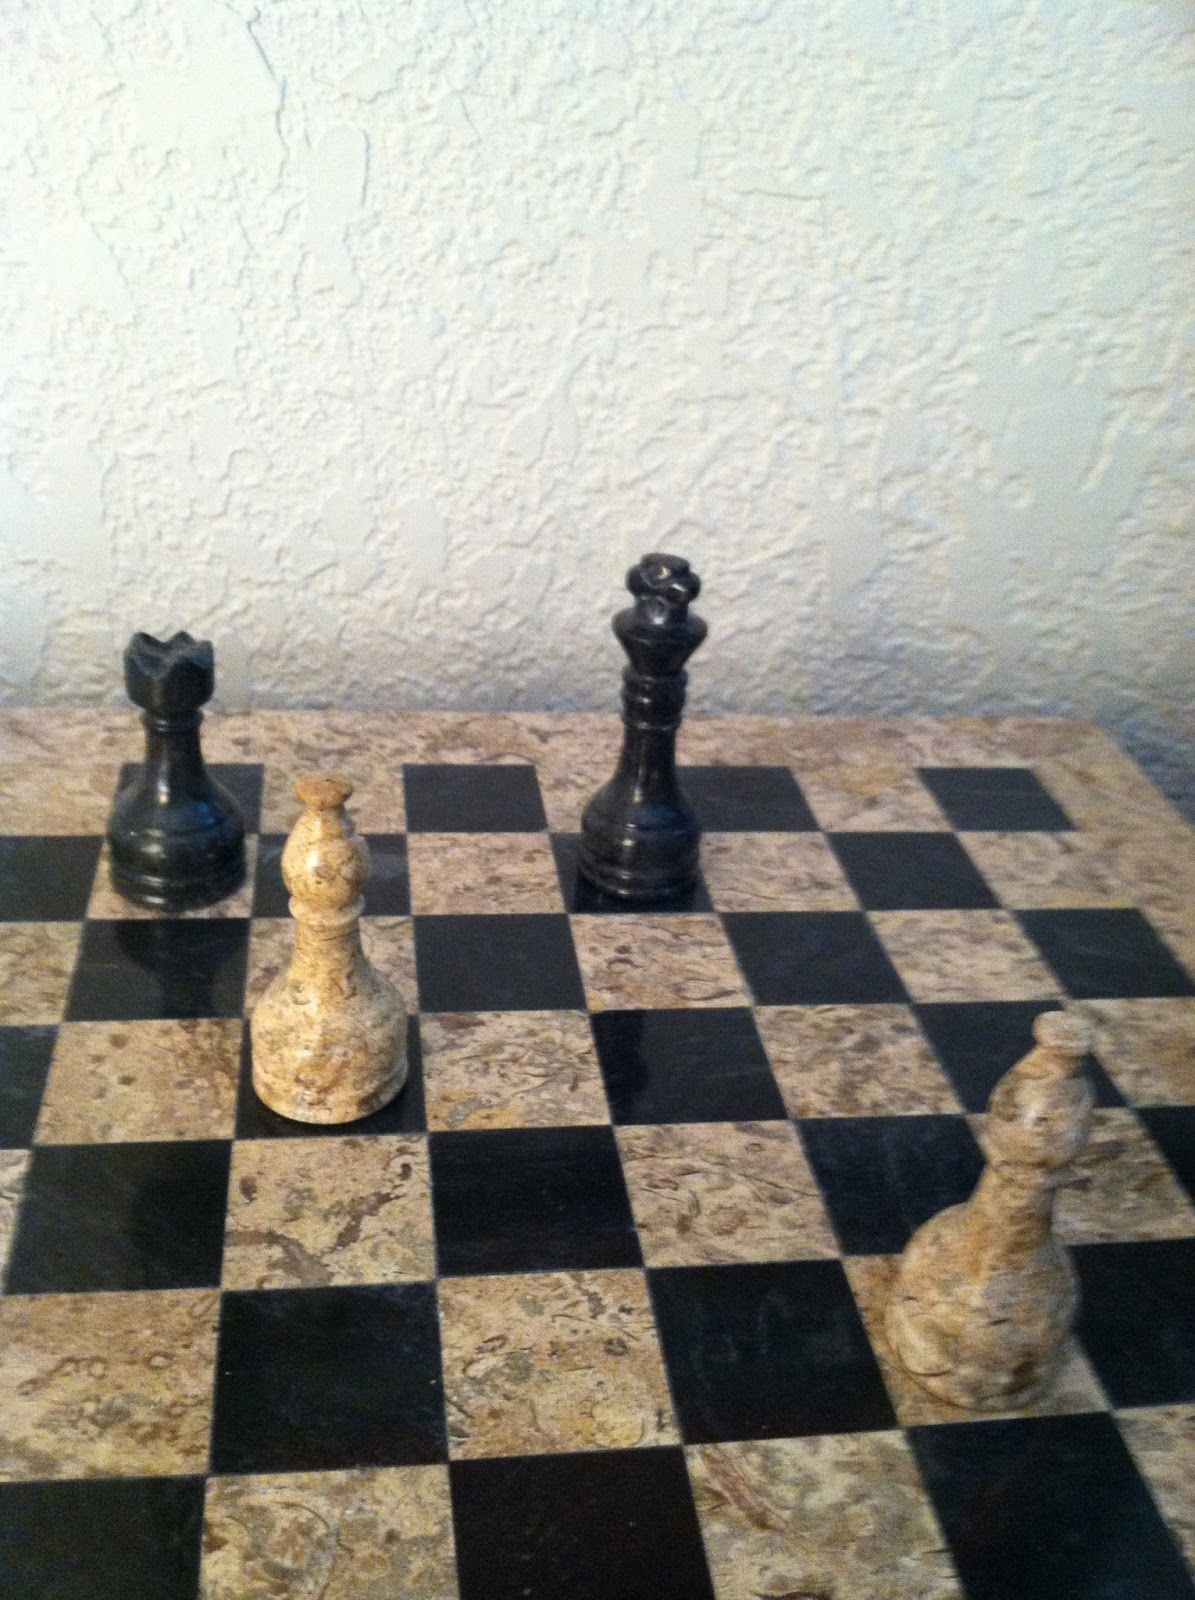 Marble Chess Board S Blog The Bishop Chess Piece